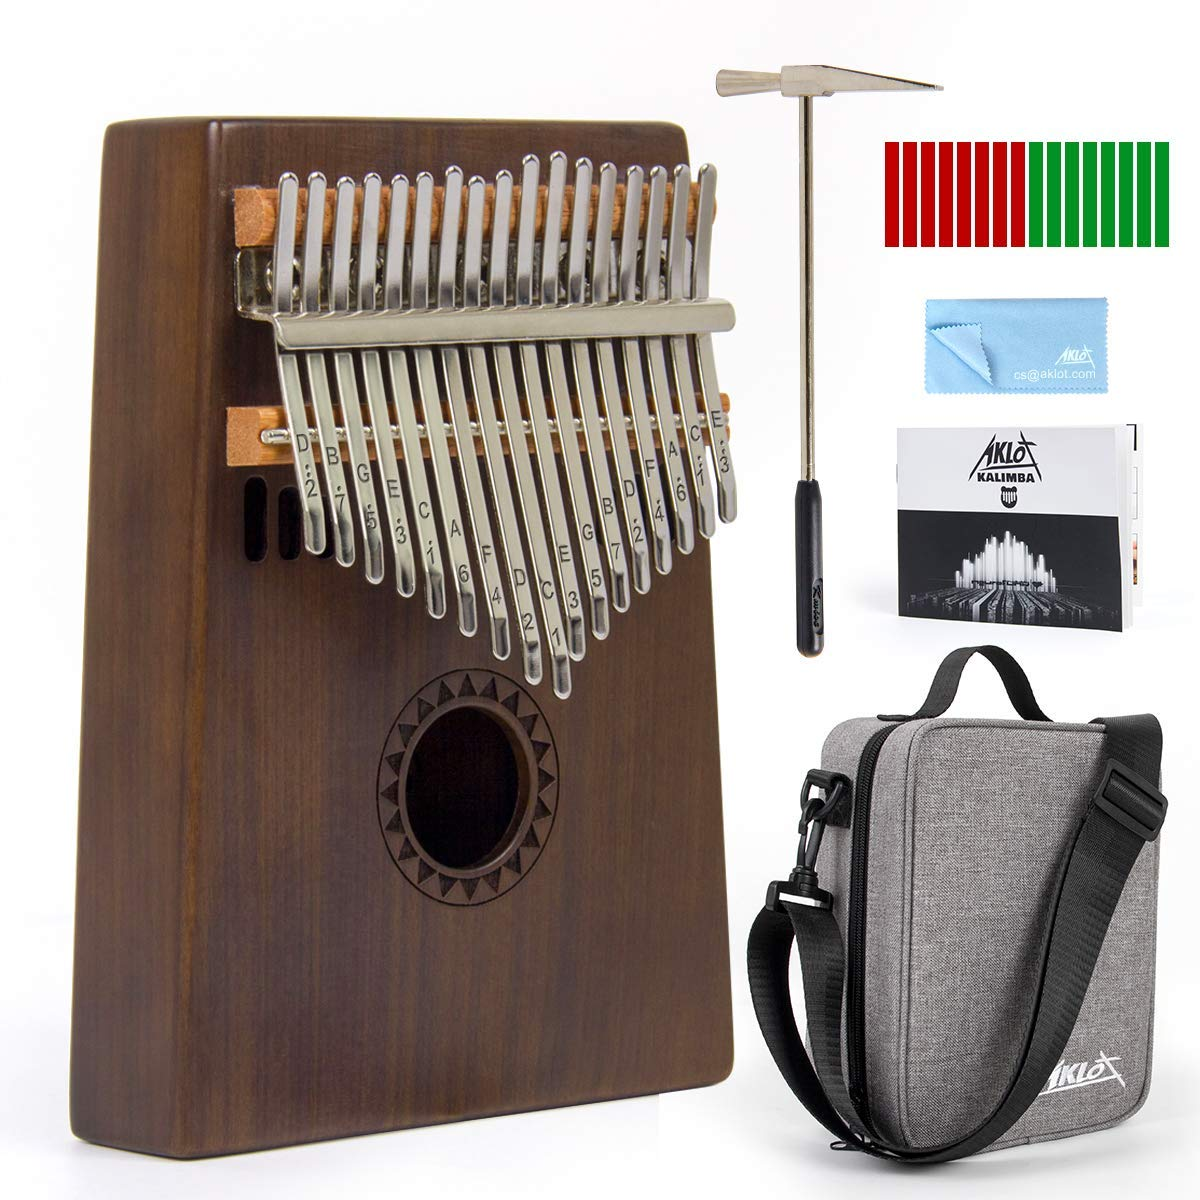 AKLOT Kalimba 17 Key, Solid Wood Thumb Piano Note Carved Starter Finger Piano with Kalimba Case Tune Hammer Study Booklet Stickers